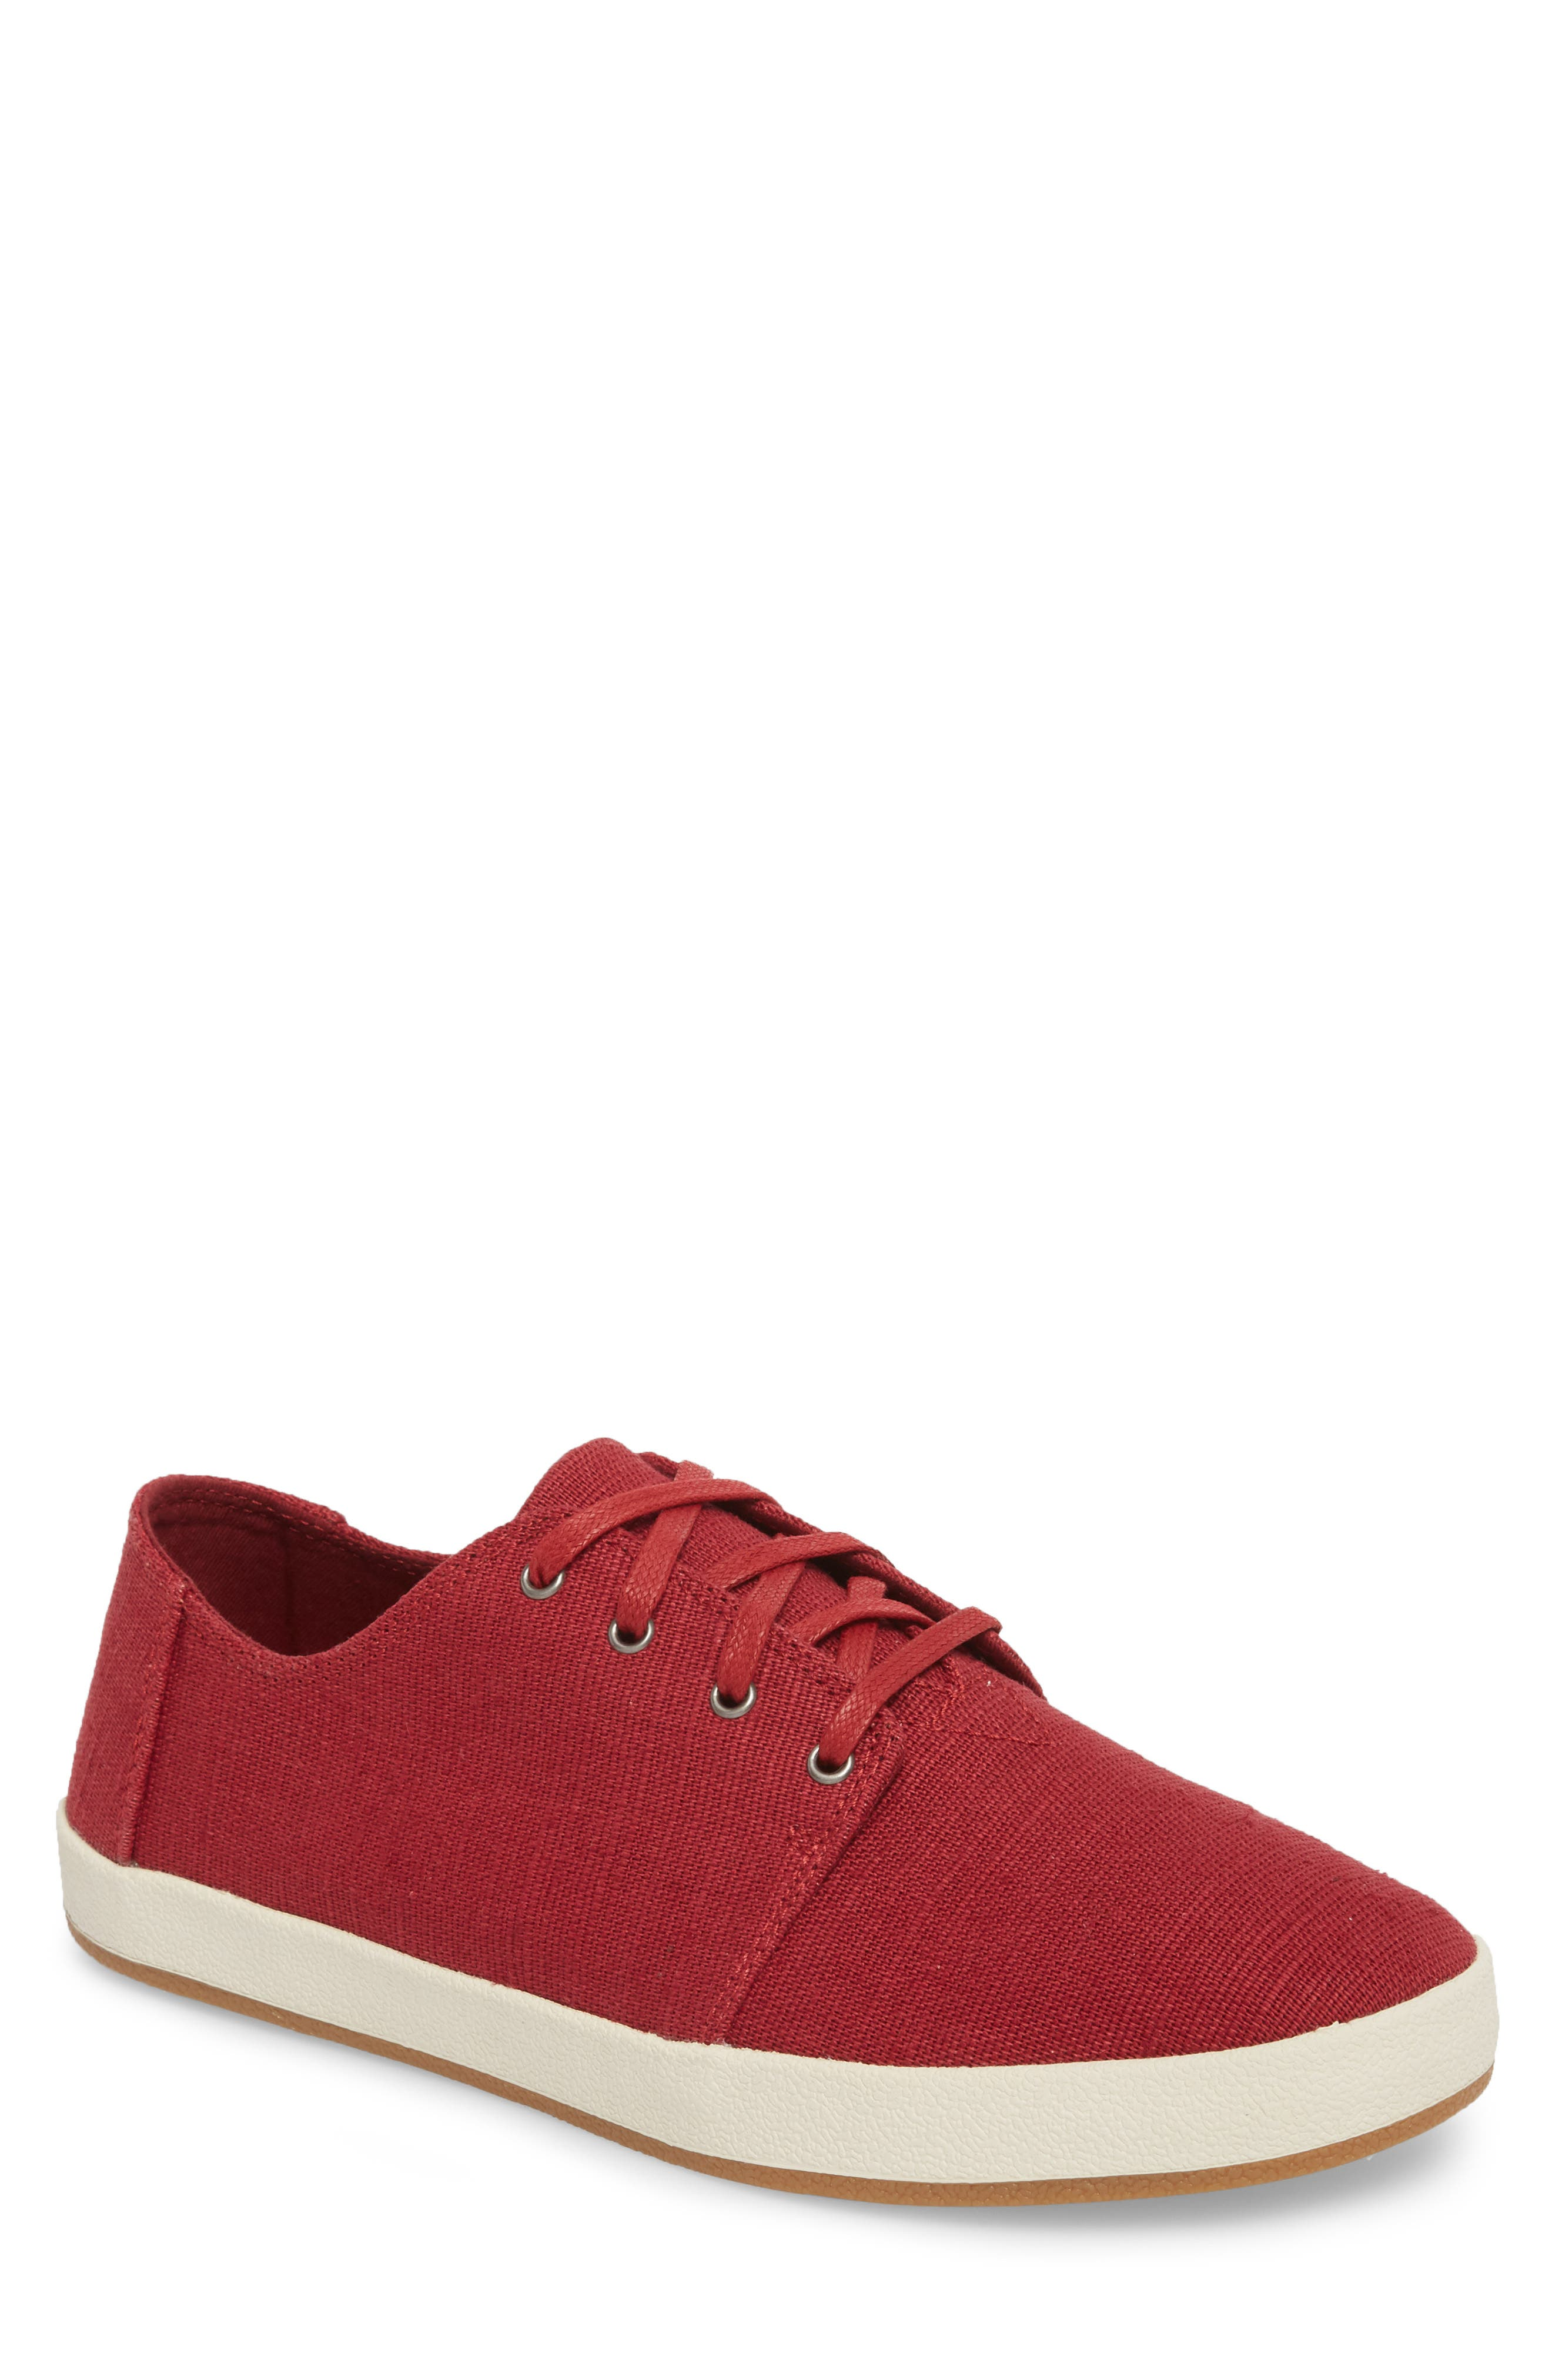 Payton Sneaker,                             Main thumbnail 1, color,                             HENNA RED HERITAGE CANVAS